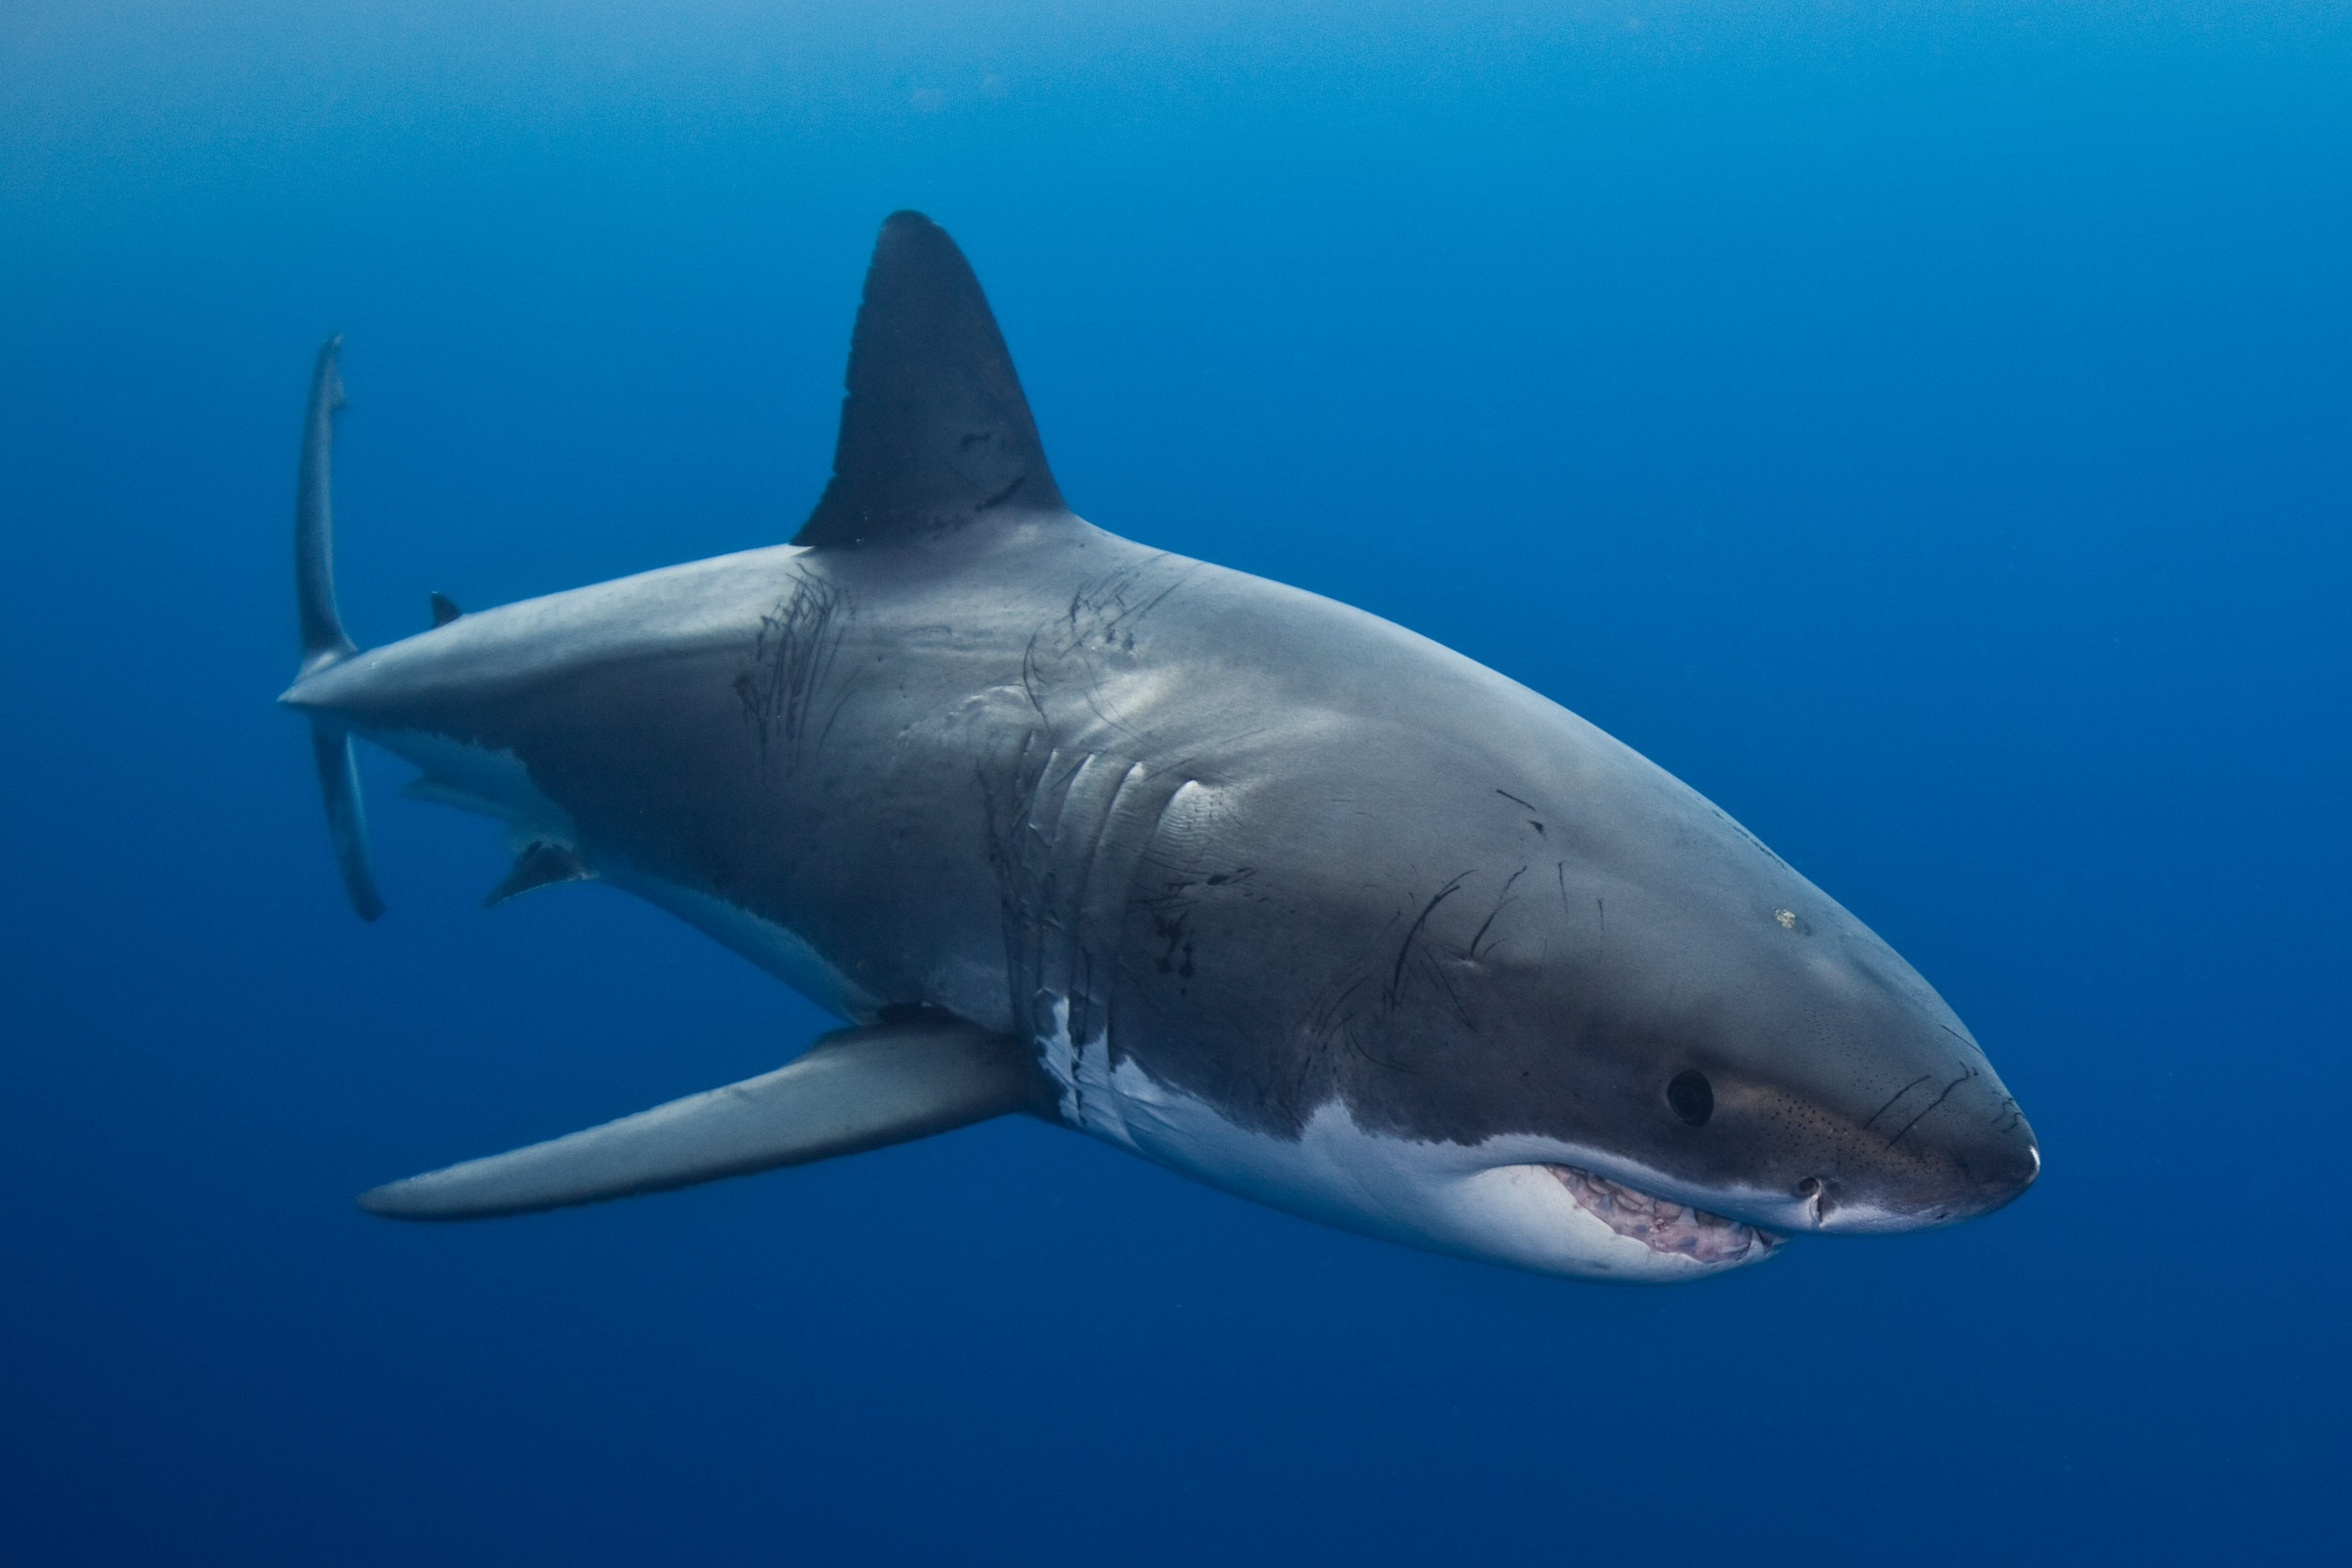 GREAT WHITE SHARK CREDIT: ANDY CASAGRANDE / coral reef image bank